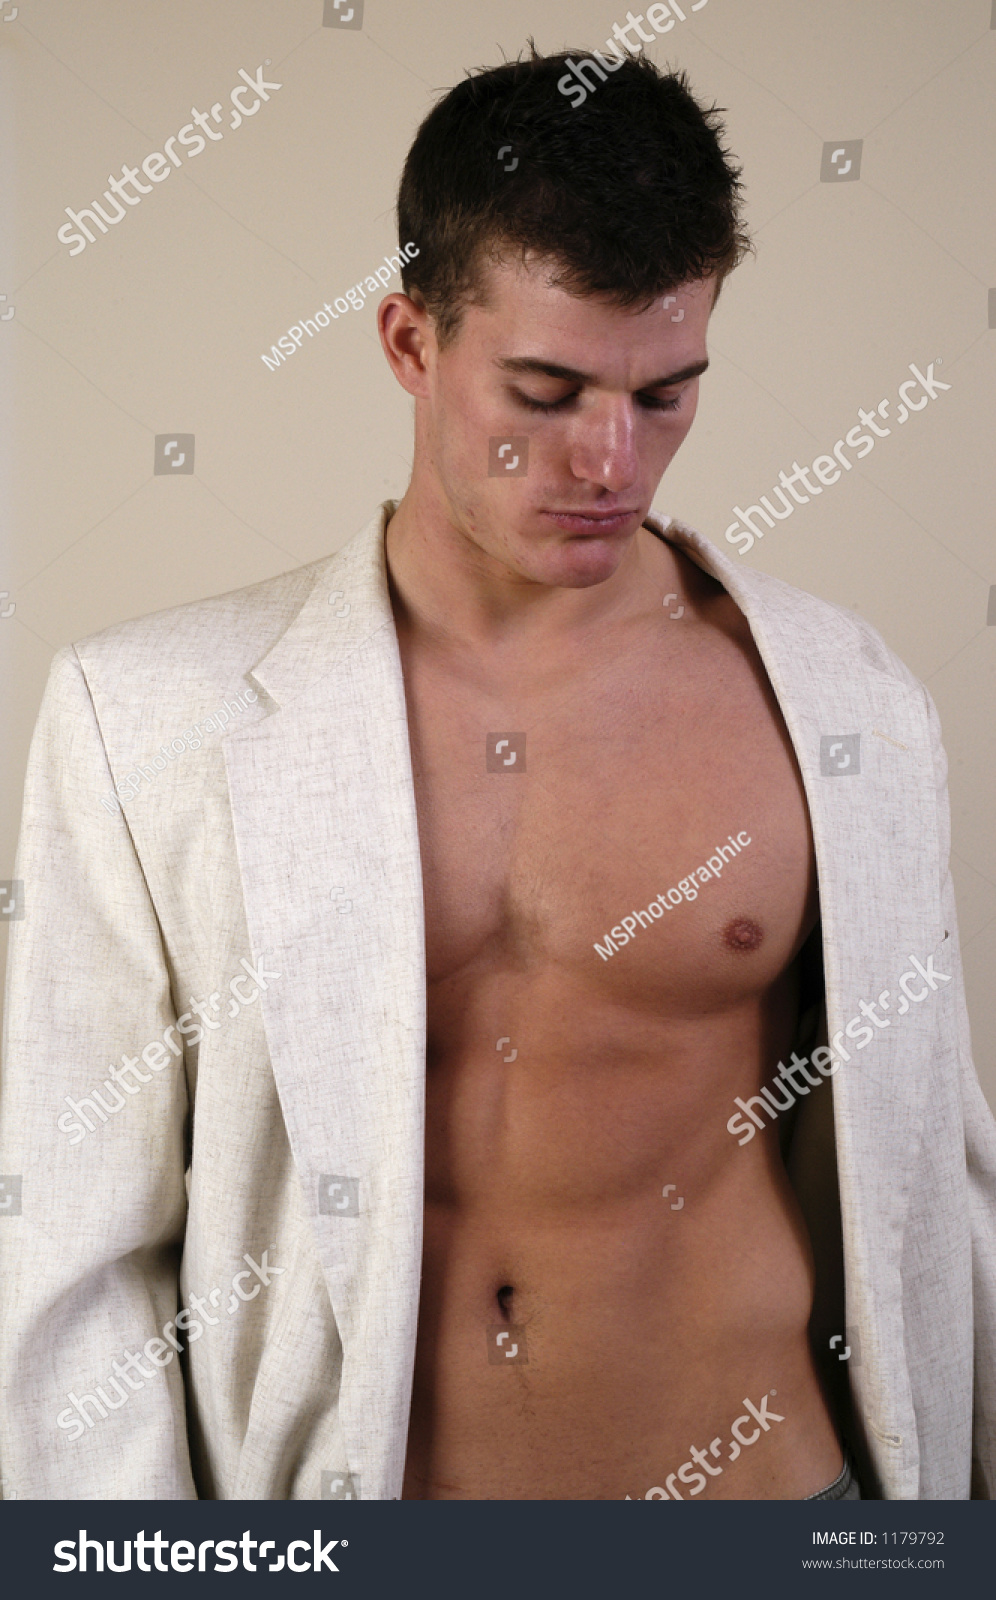 Man Suit Jacket No Shirt Stock Photo 1179792 - Shutterstock